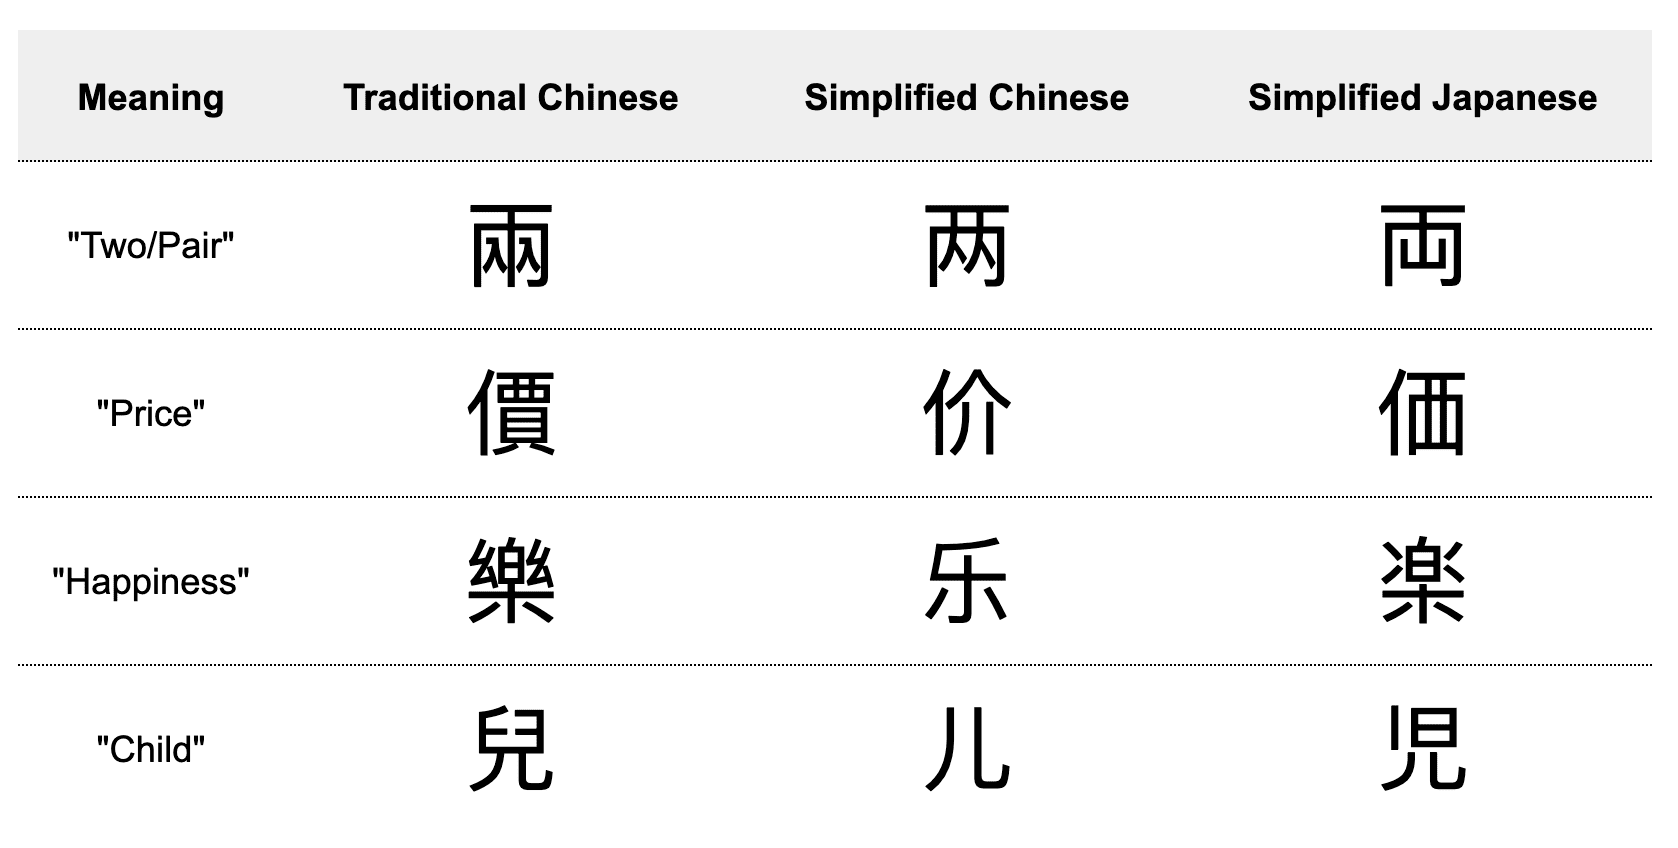 Chinese language facts - Chinese characters in traditional chinese, simplified chinese, and simplified japanese